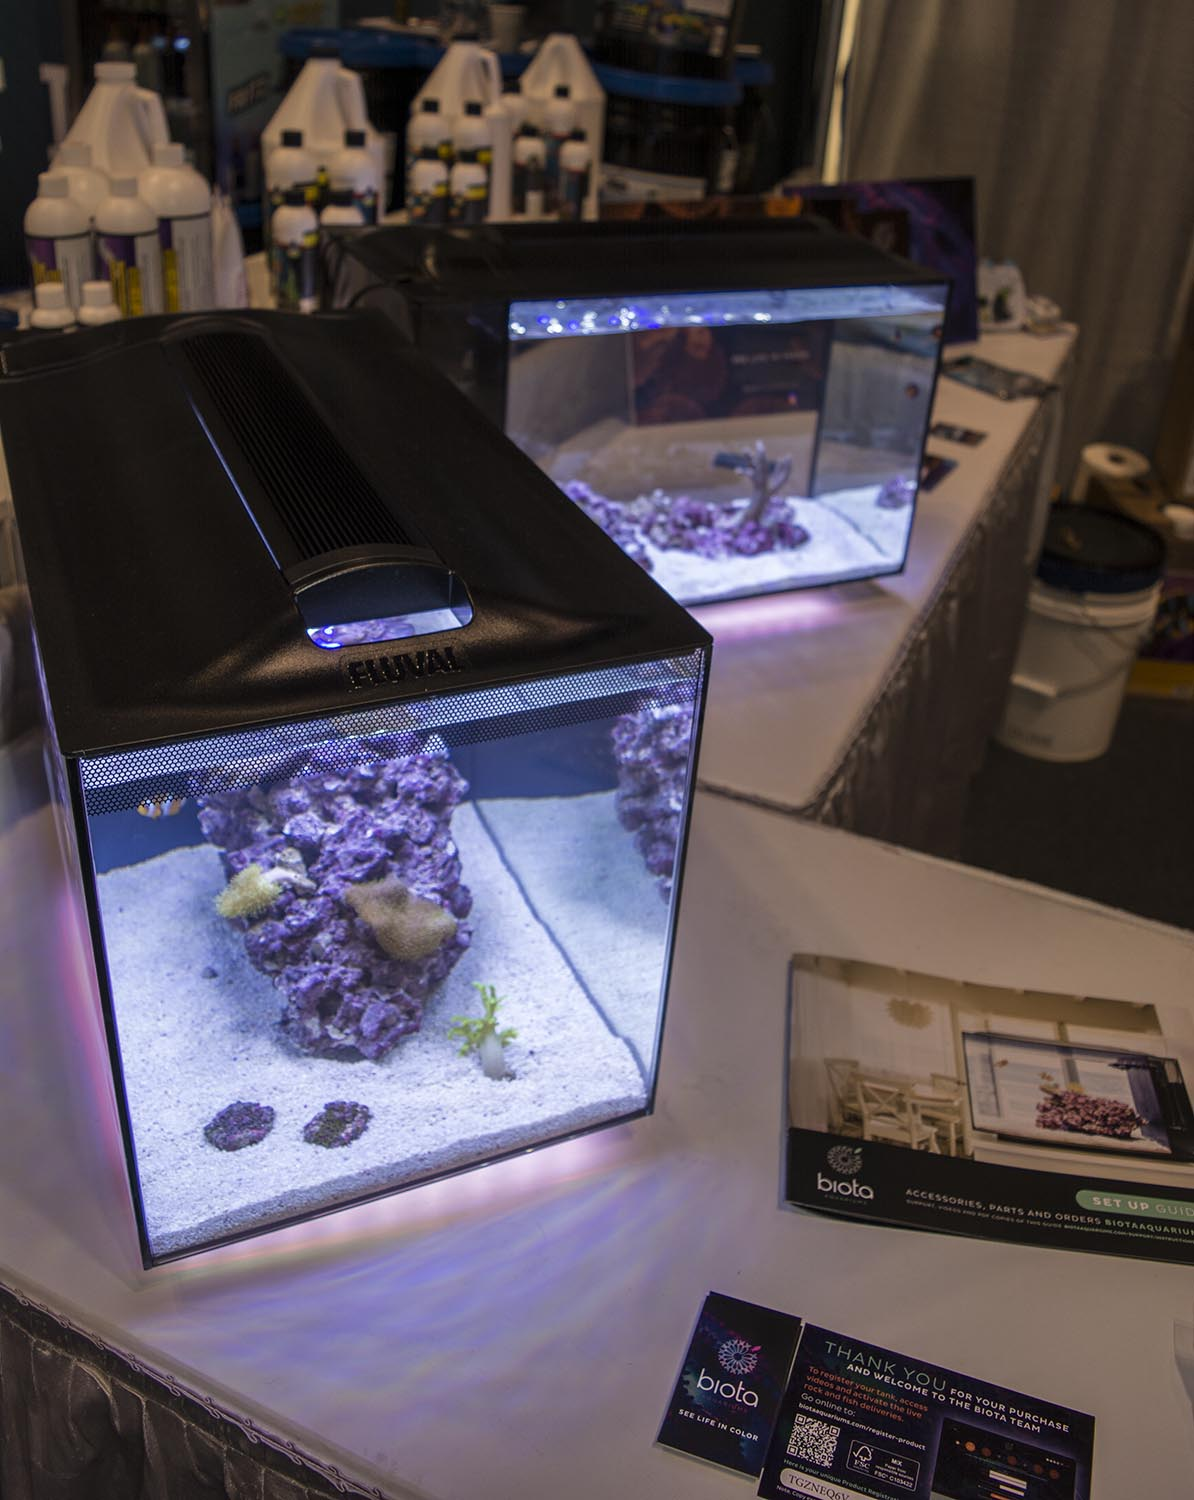 New Biota Aquarium kits featuring captive bred fish and corals from Biota Marine Life Nursery in Palau made an appearance at the Two Little Fishies booth.